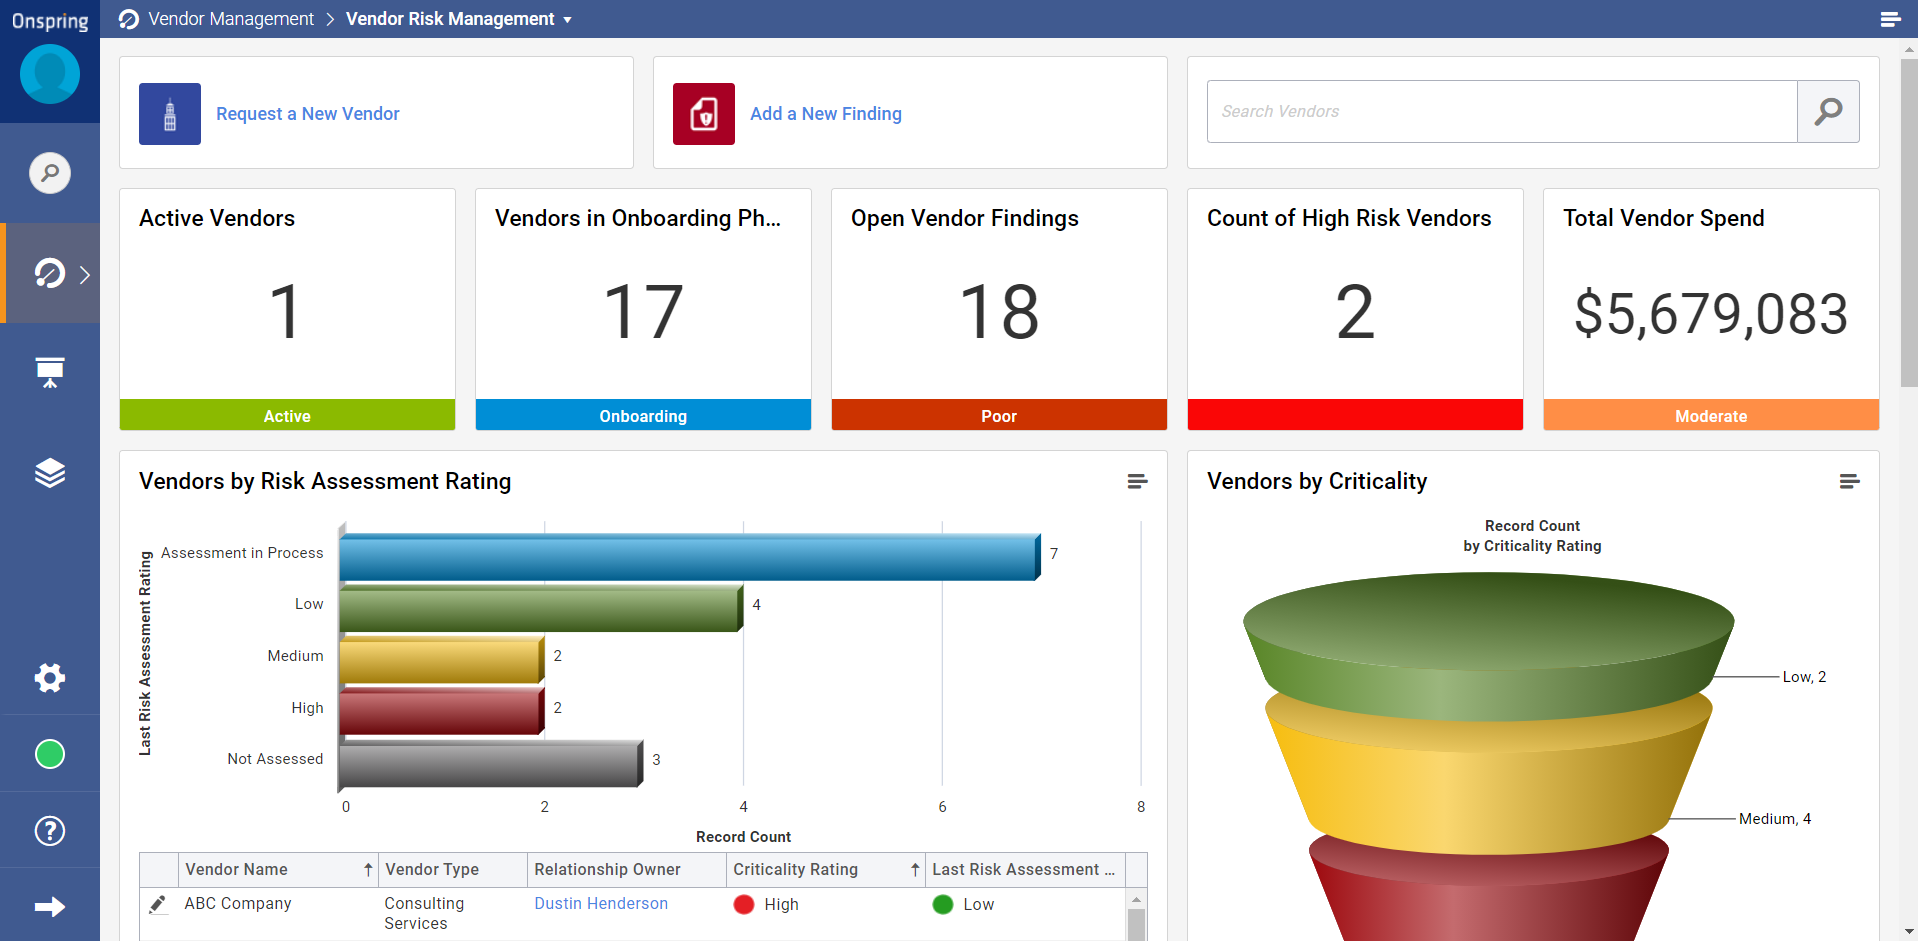 Manage full vendor lifecycle with procurement. Conduct standardized vendor onboarding process. Issue customized vendor risk assessments. Monitor vendor findings and mitigation plans. Identify duplicate vendors or repeat vendor uses across the enterprise.